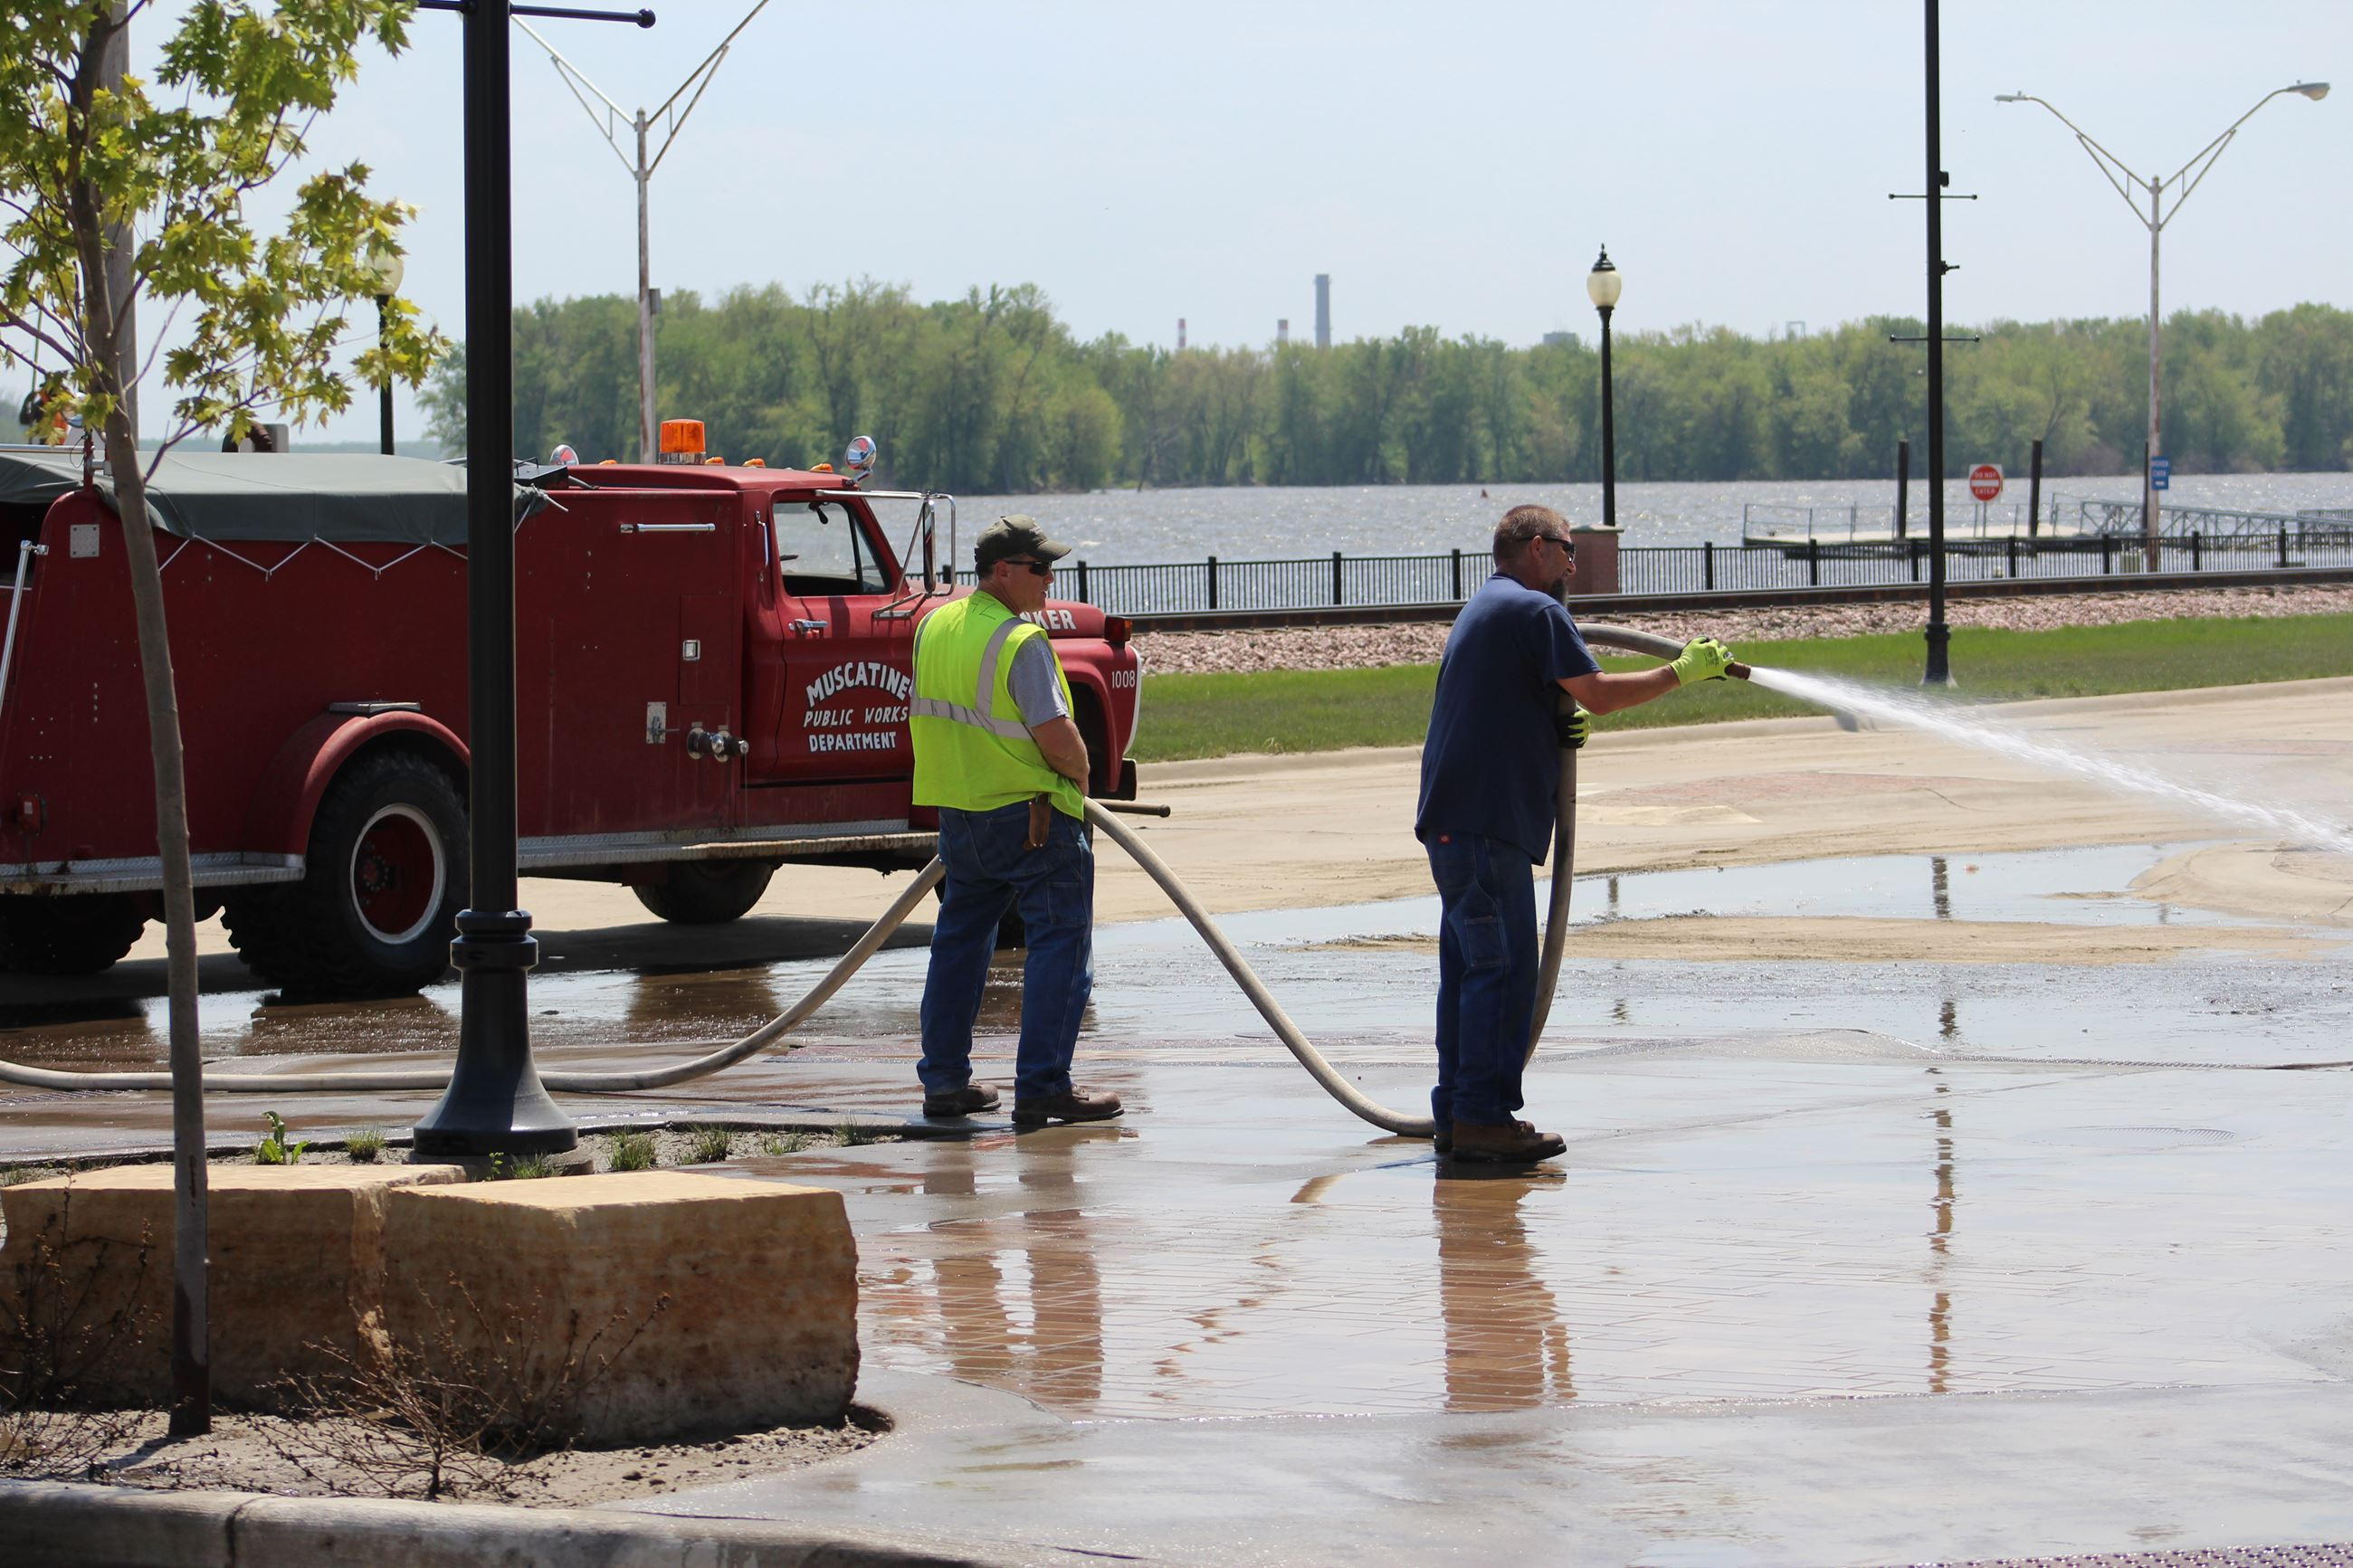 DPW staff spray down Sycamore intersection on May 16, 2019 (JPG)